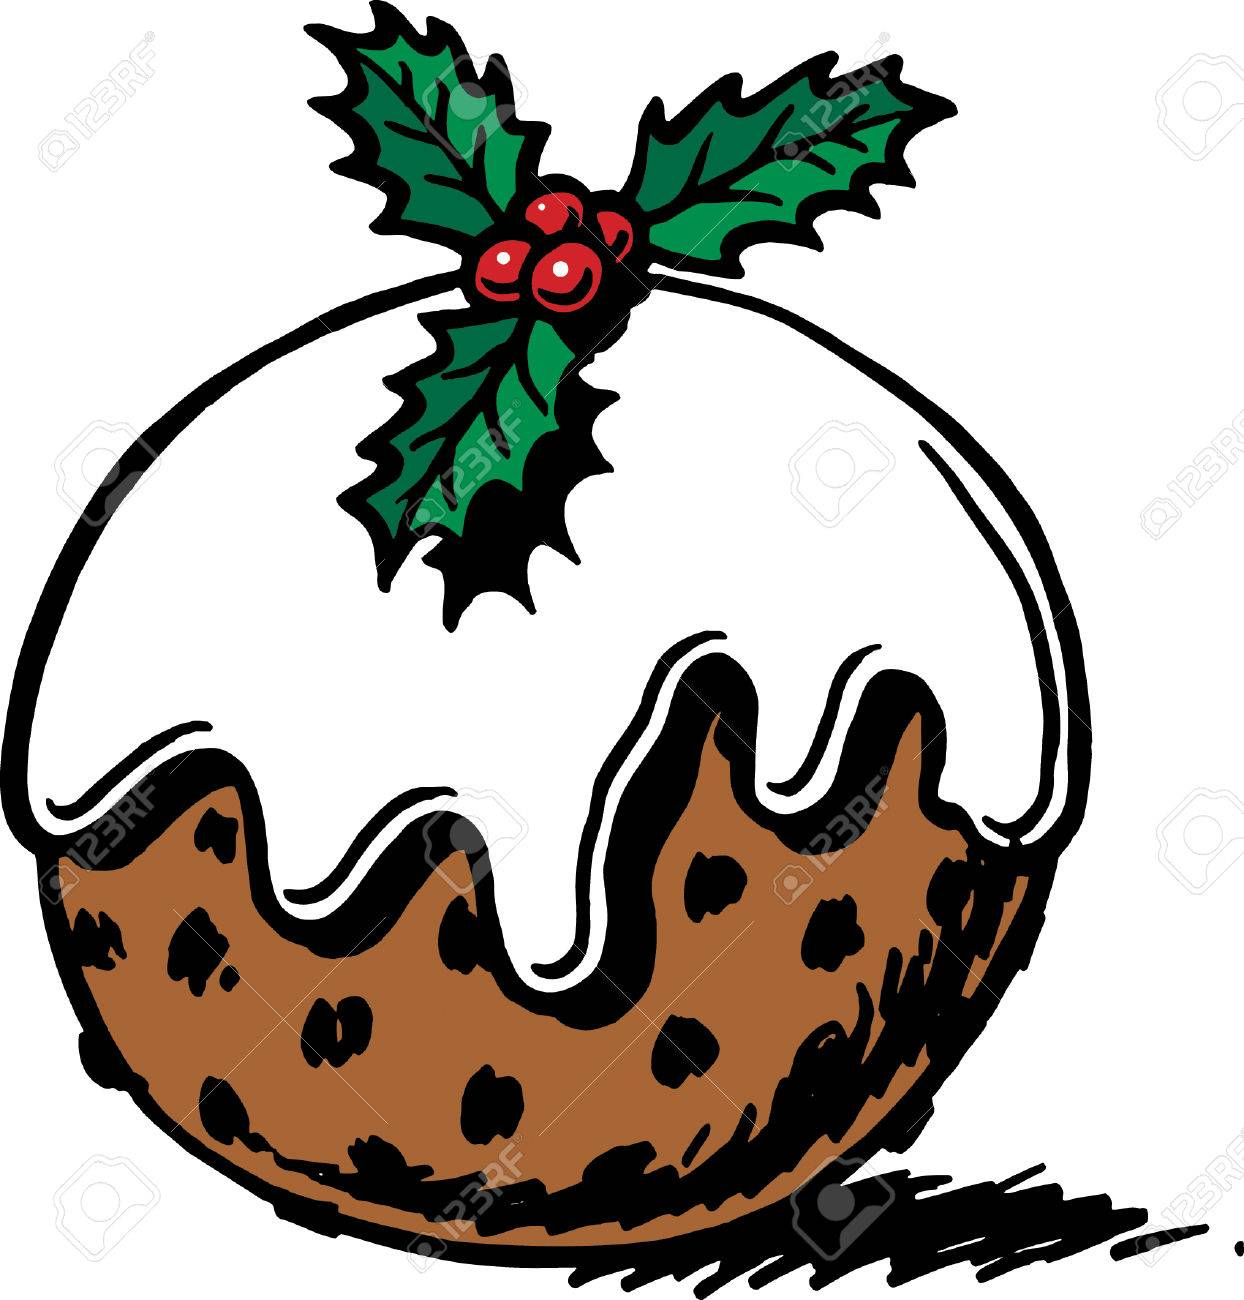 Plum pudding clipart image royalty free Pudding Clipart | Free download best Pudding Clipart on ... image royalty free